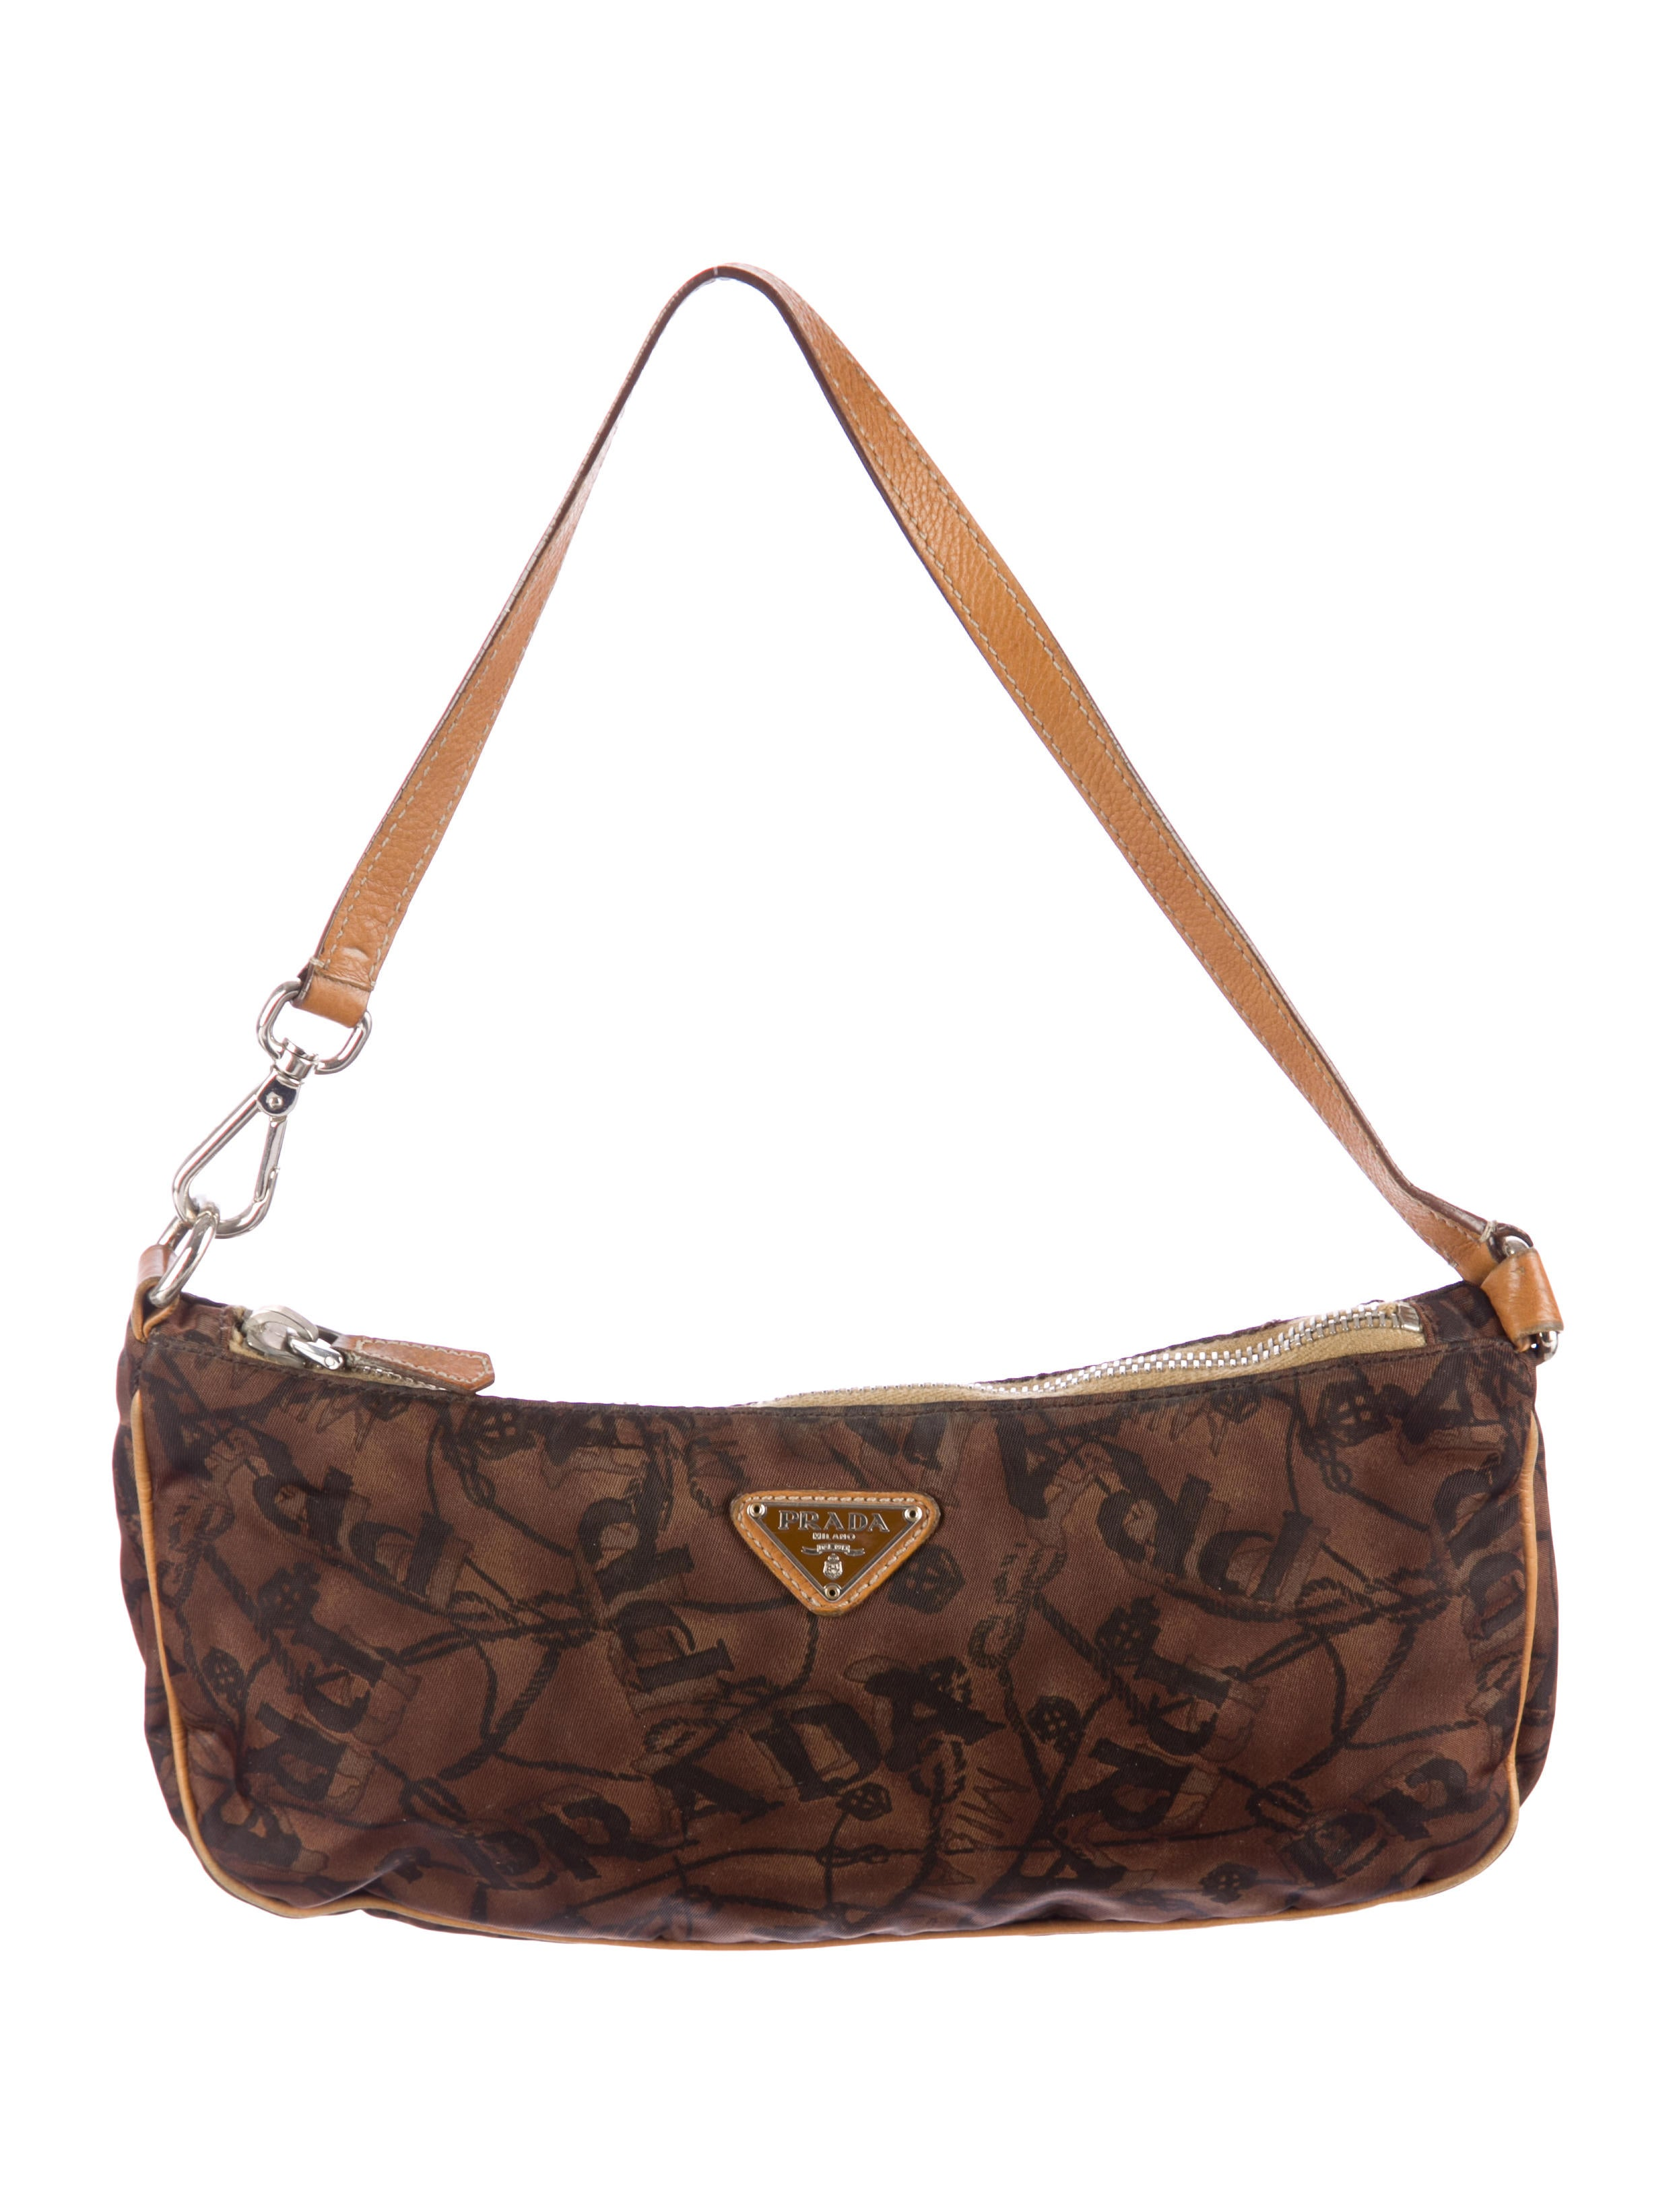 discount authentic prada handbags - Prada Printed Tessuto Pochette - Handbags - PRA64315 | The RealReal